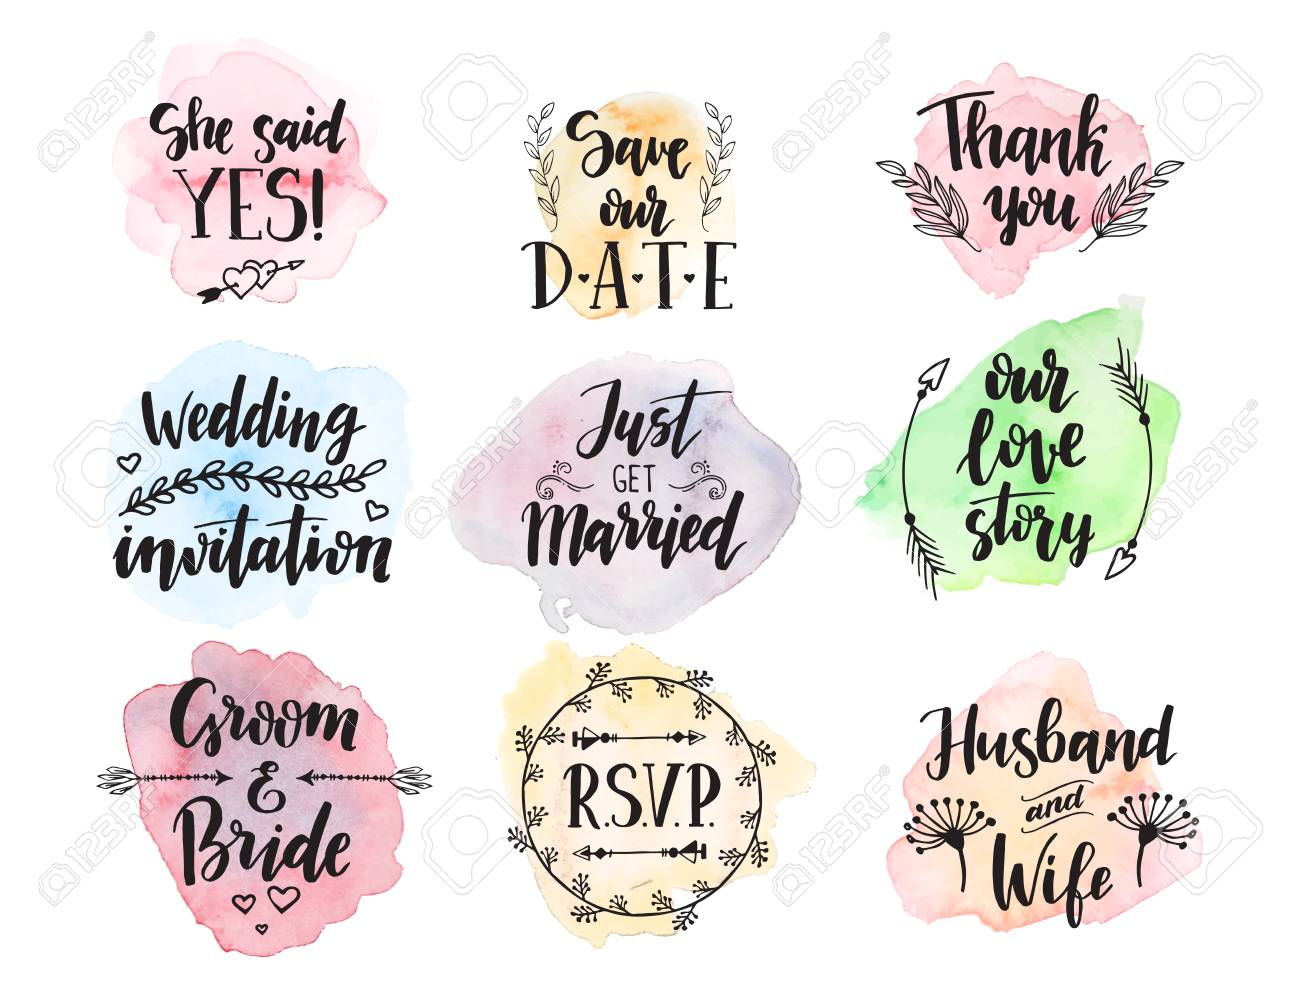 Wedding day marriage proposal phrases text lettering invitation banco de imagens wedding day marriage proposal phrases text lettering invitation cards calligraphy hand drawn greeting love label romantic vector stopboris Choice Image